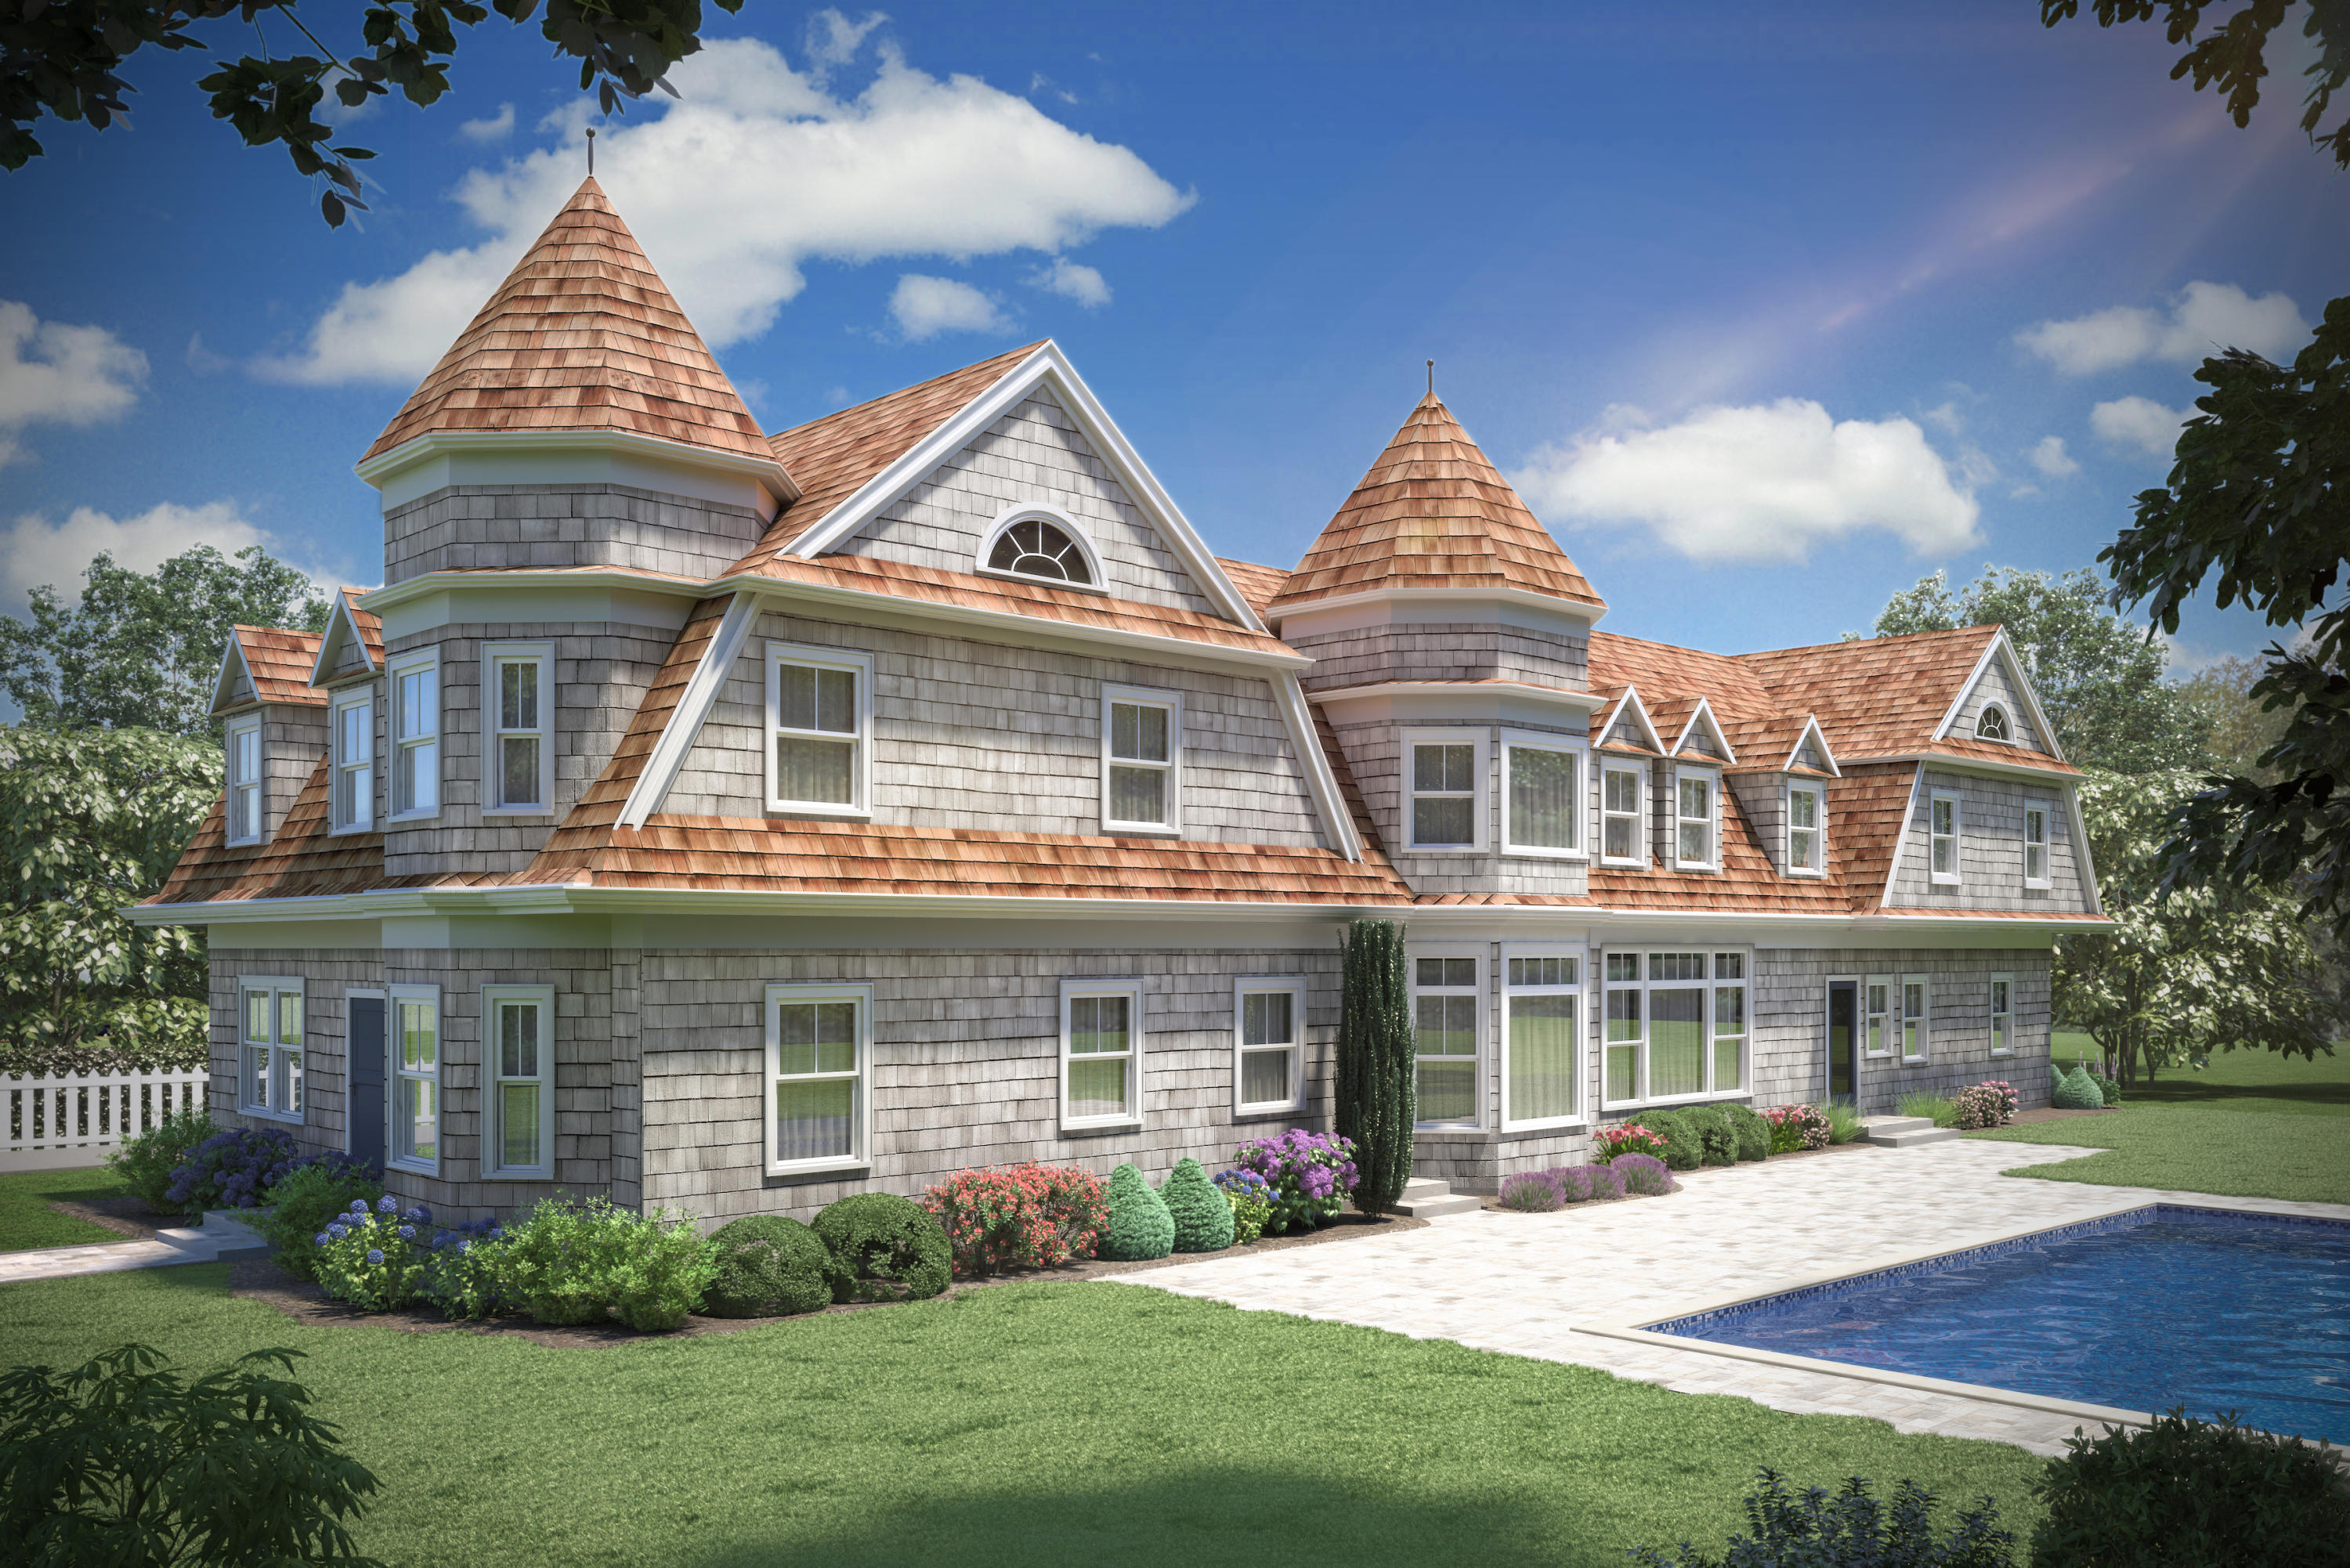 click to view more details 70 Seaview Street, Chatham, MA 02633